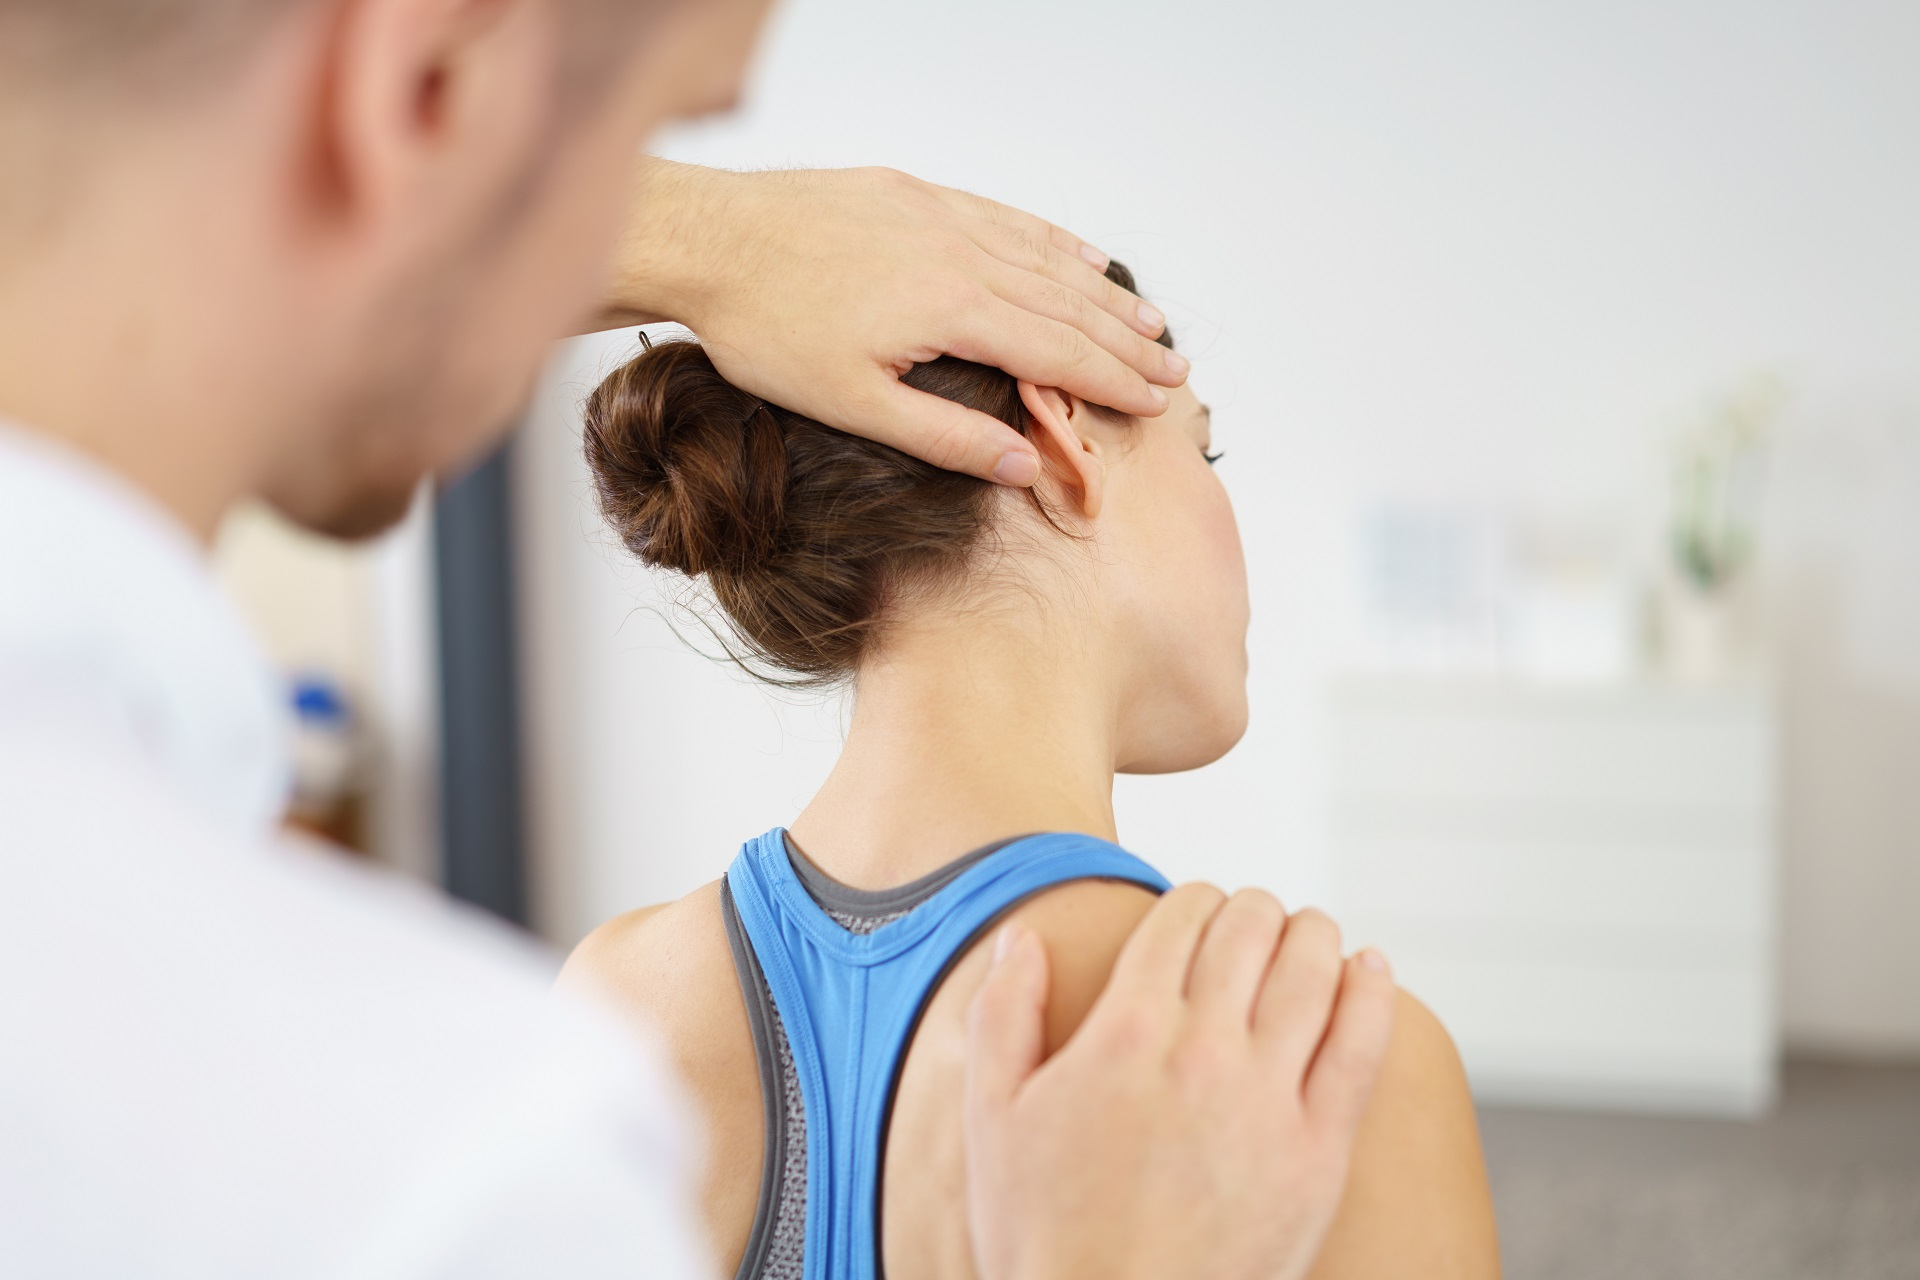 Treating-Headaches-With-Chiropractic-Care.jpg